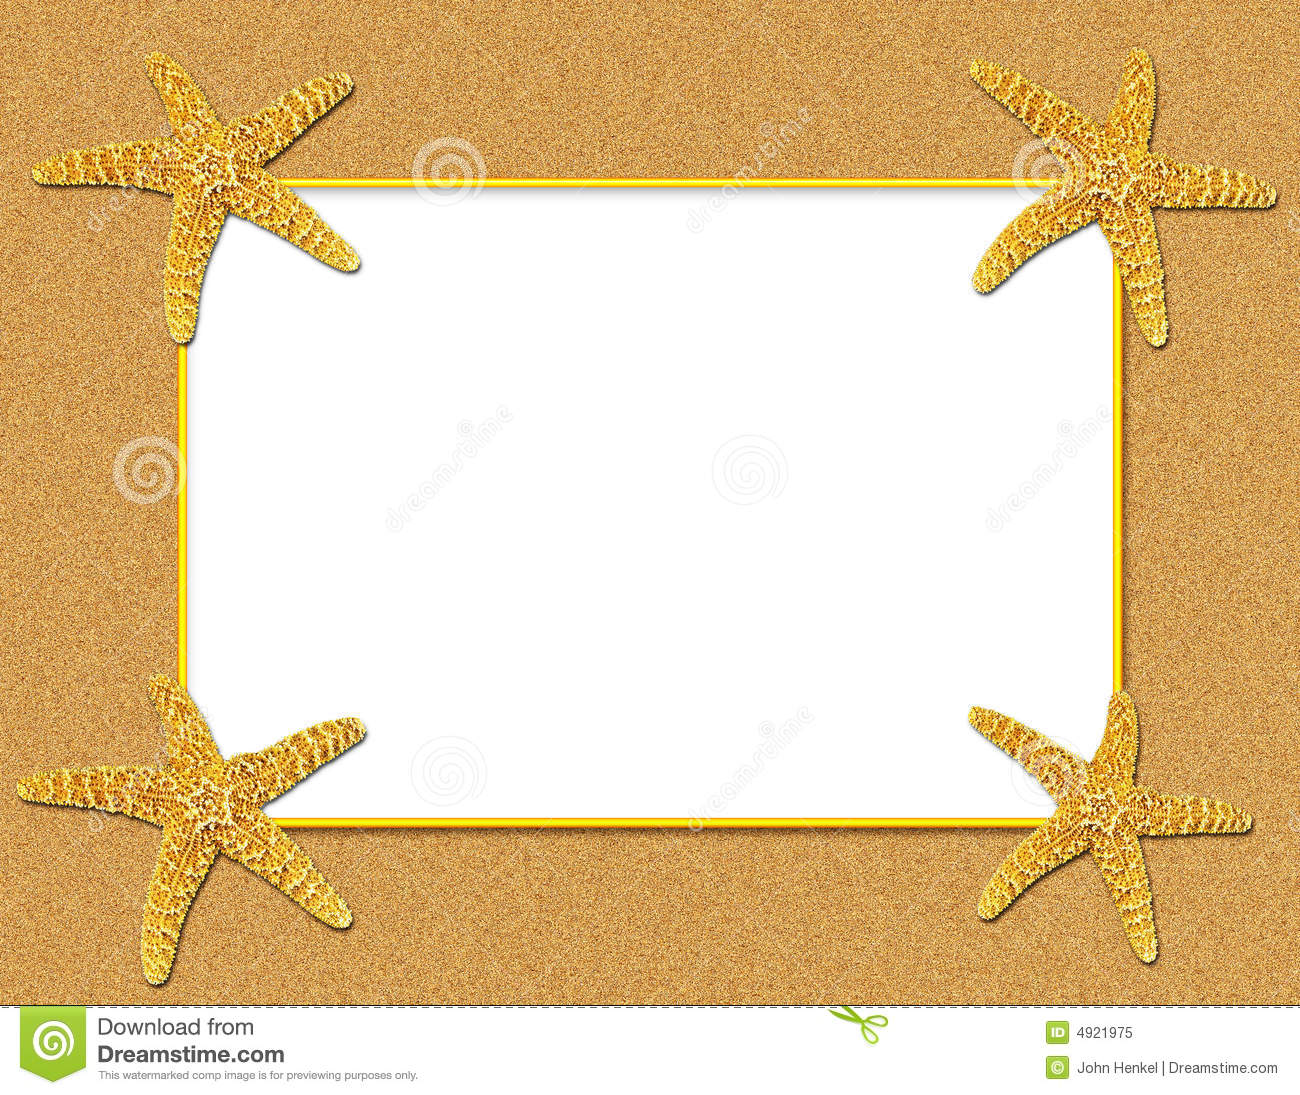 Free clipart images starfish free vector download (3,236 files ...